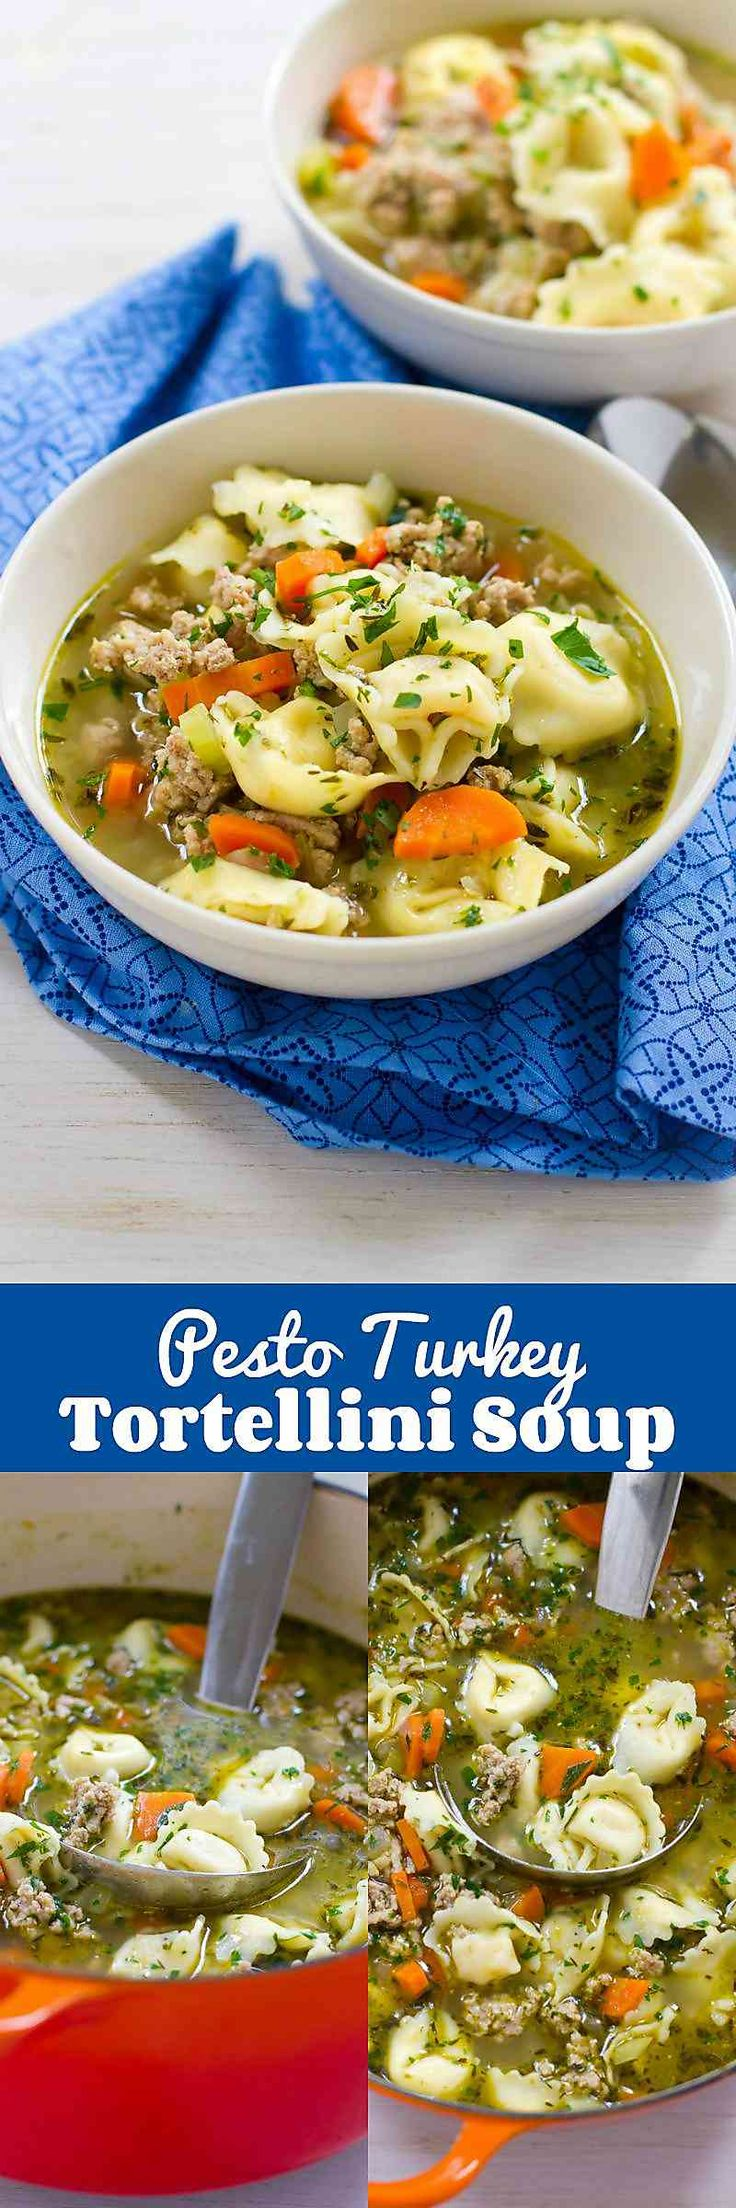 30 minute meal! This healthy Pesto Turkey Tortellini Soup recipe makes cooking easy! 257 calories and 7 Weight Watchers SmartPoints